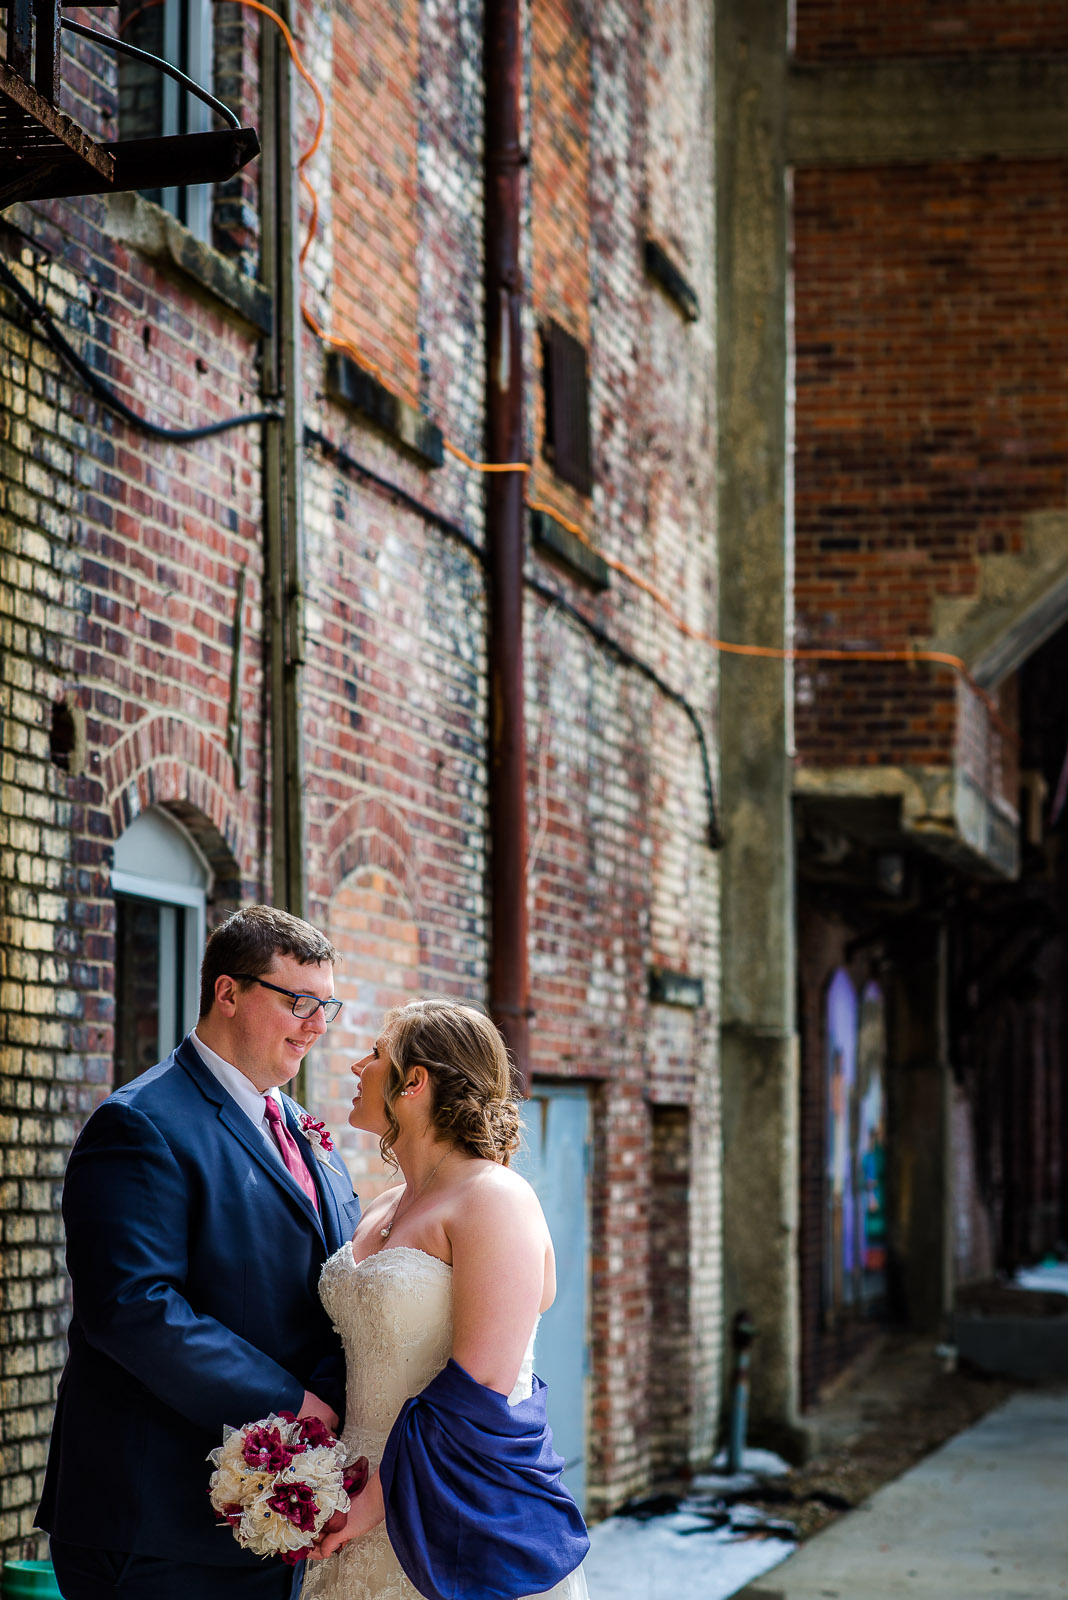 Eric_and_Christy_Photography_Blog_Wedding_Karen_Nick-34